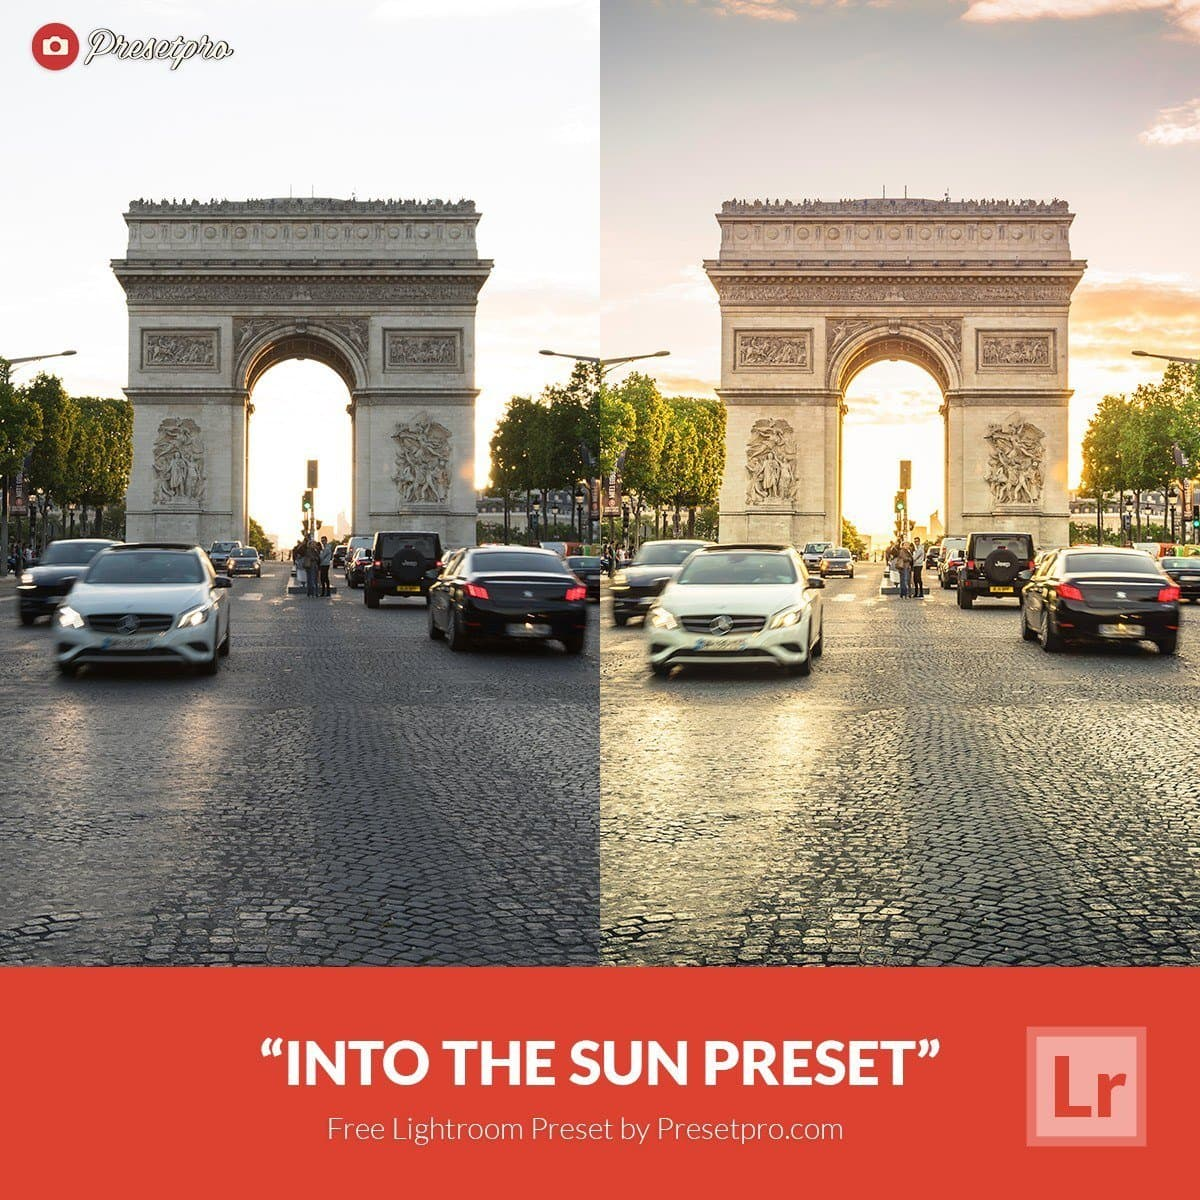 Free-Lightroom-Preset-Into-The-Sun